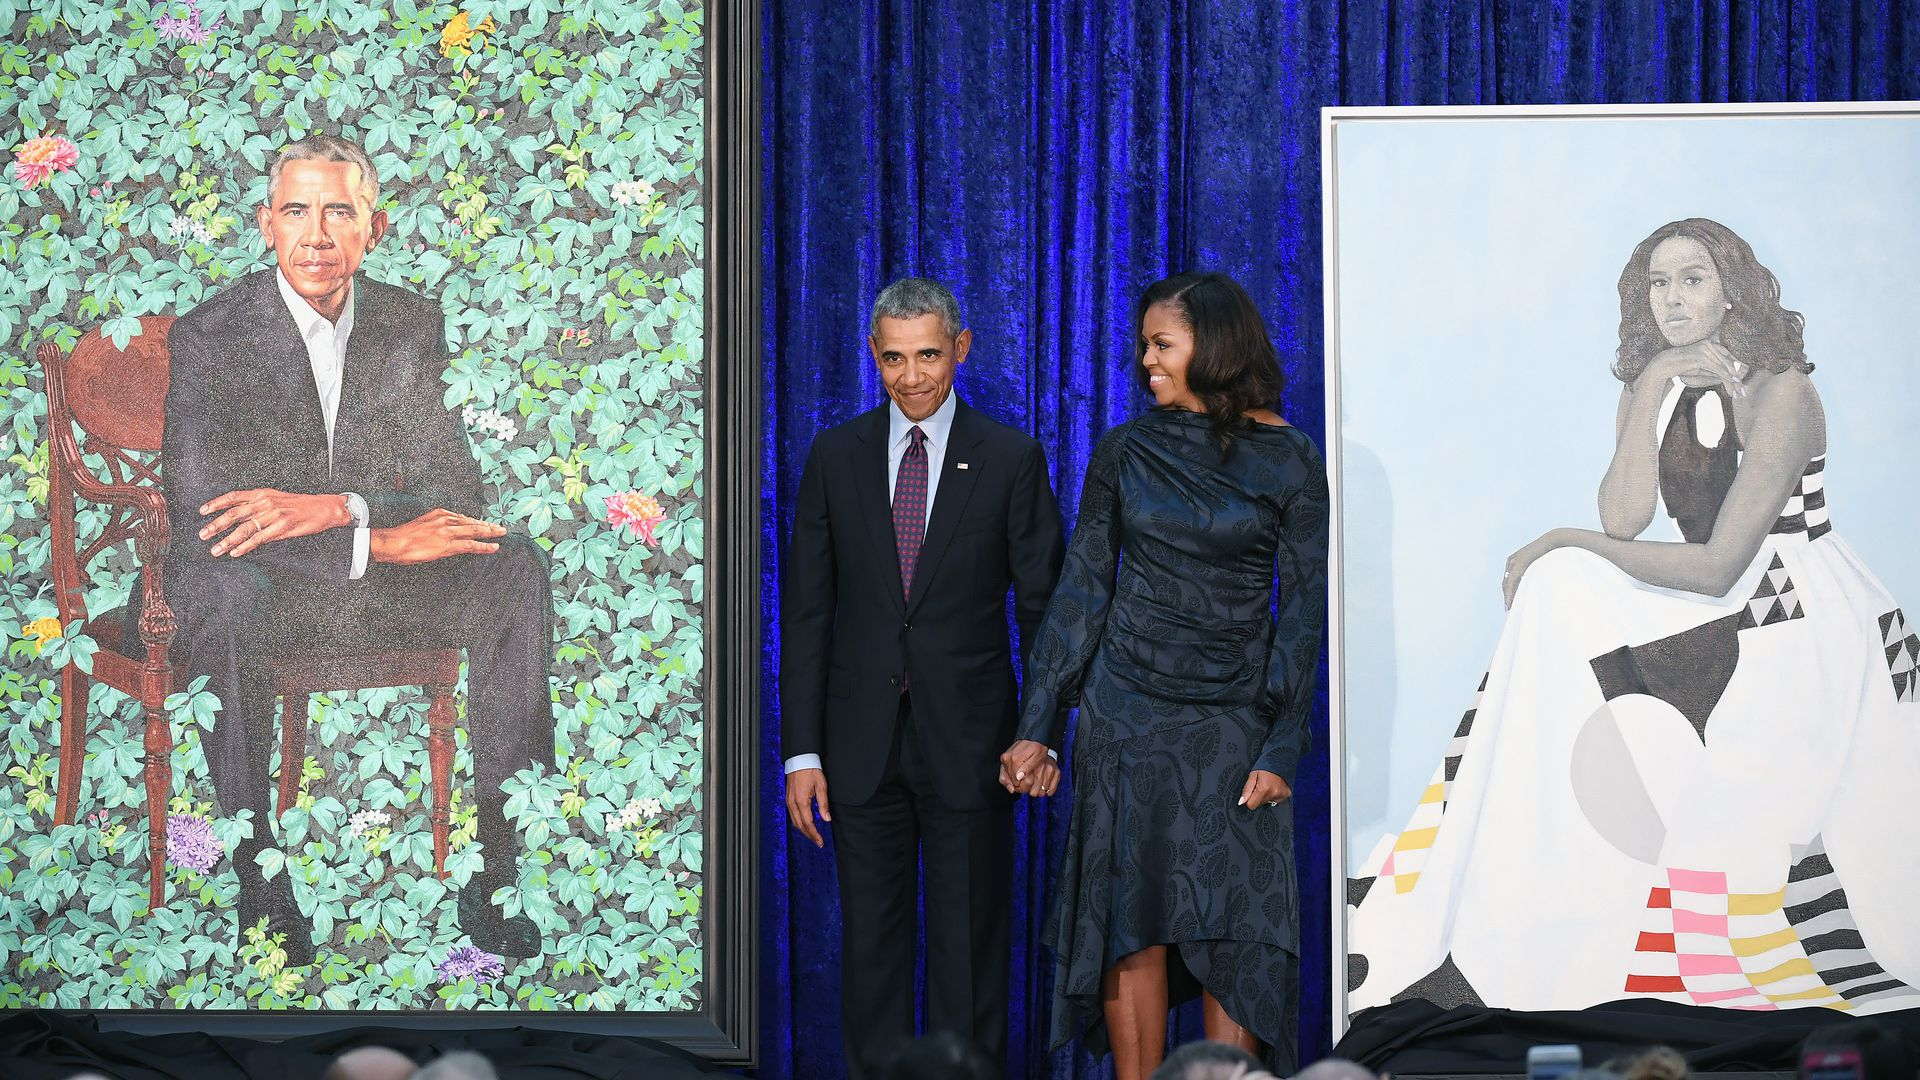 Portraits of Obamas to begin 5-city USA tour in Chicago